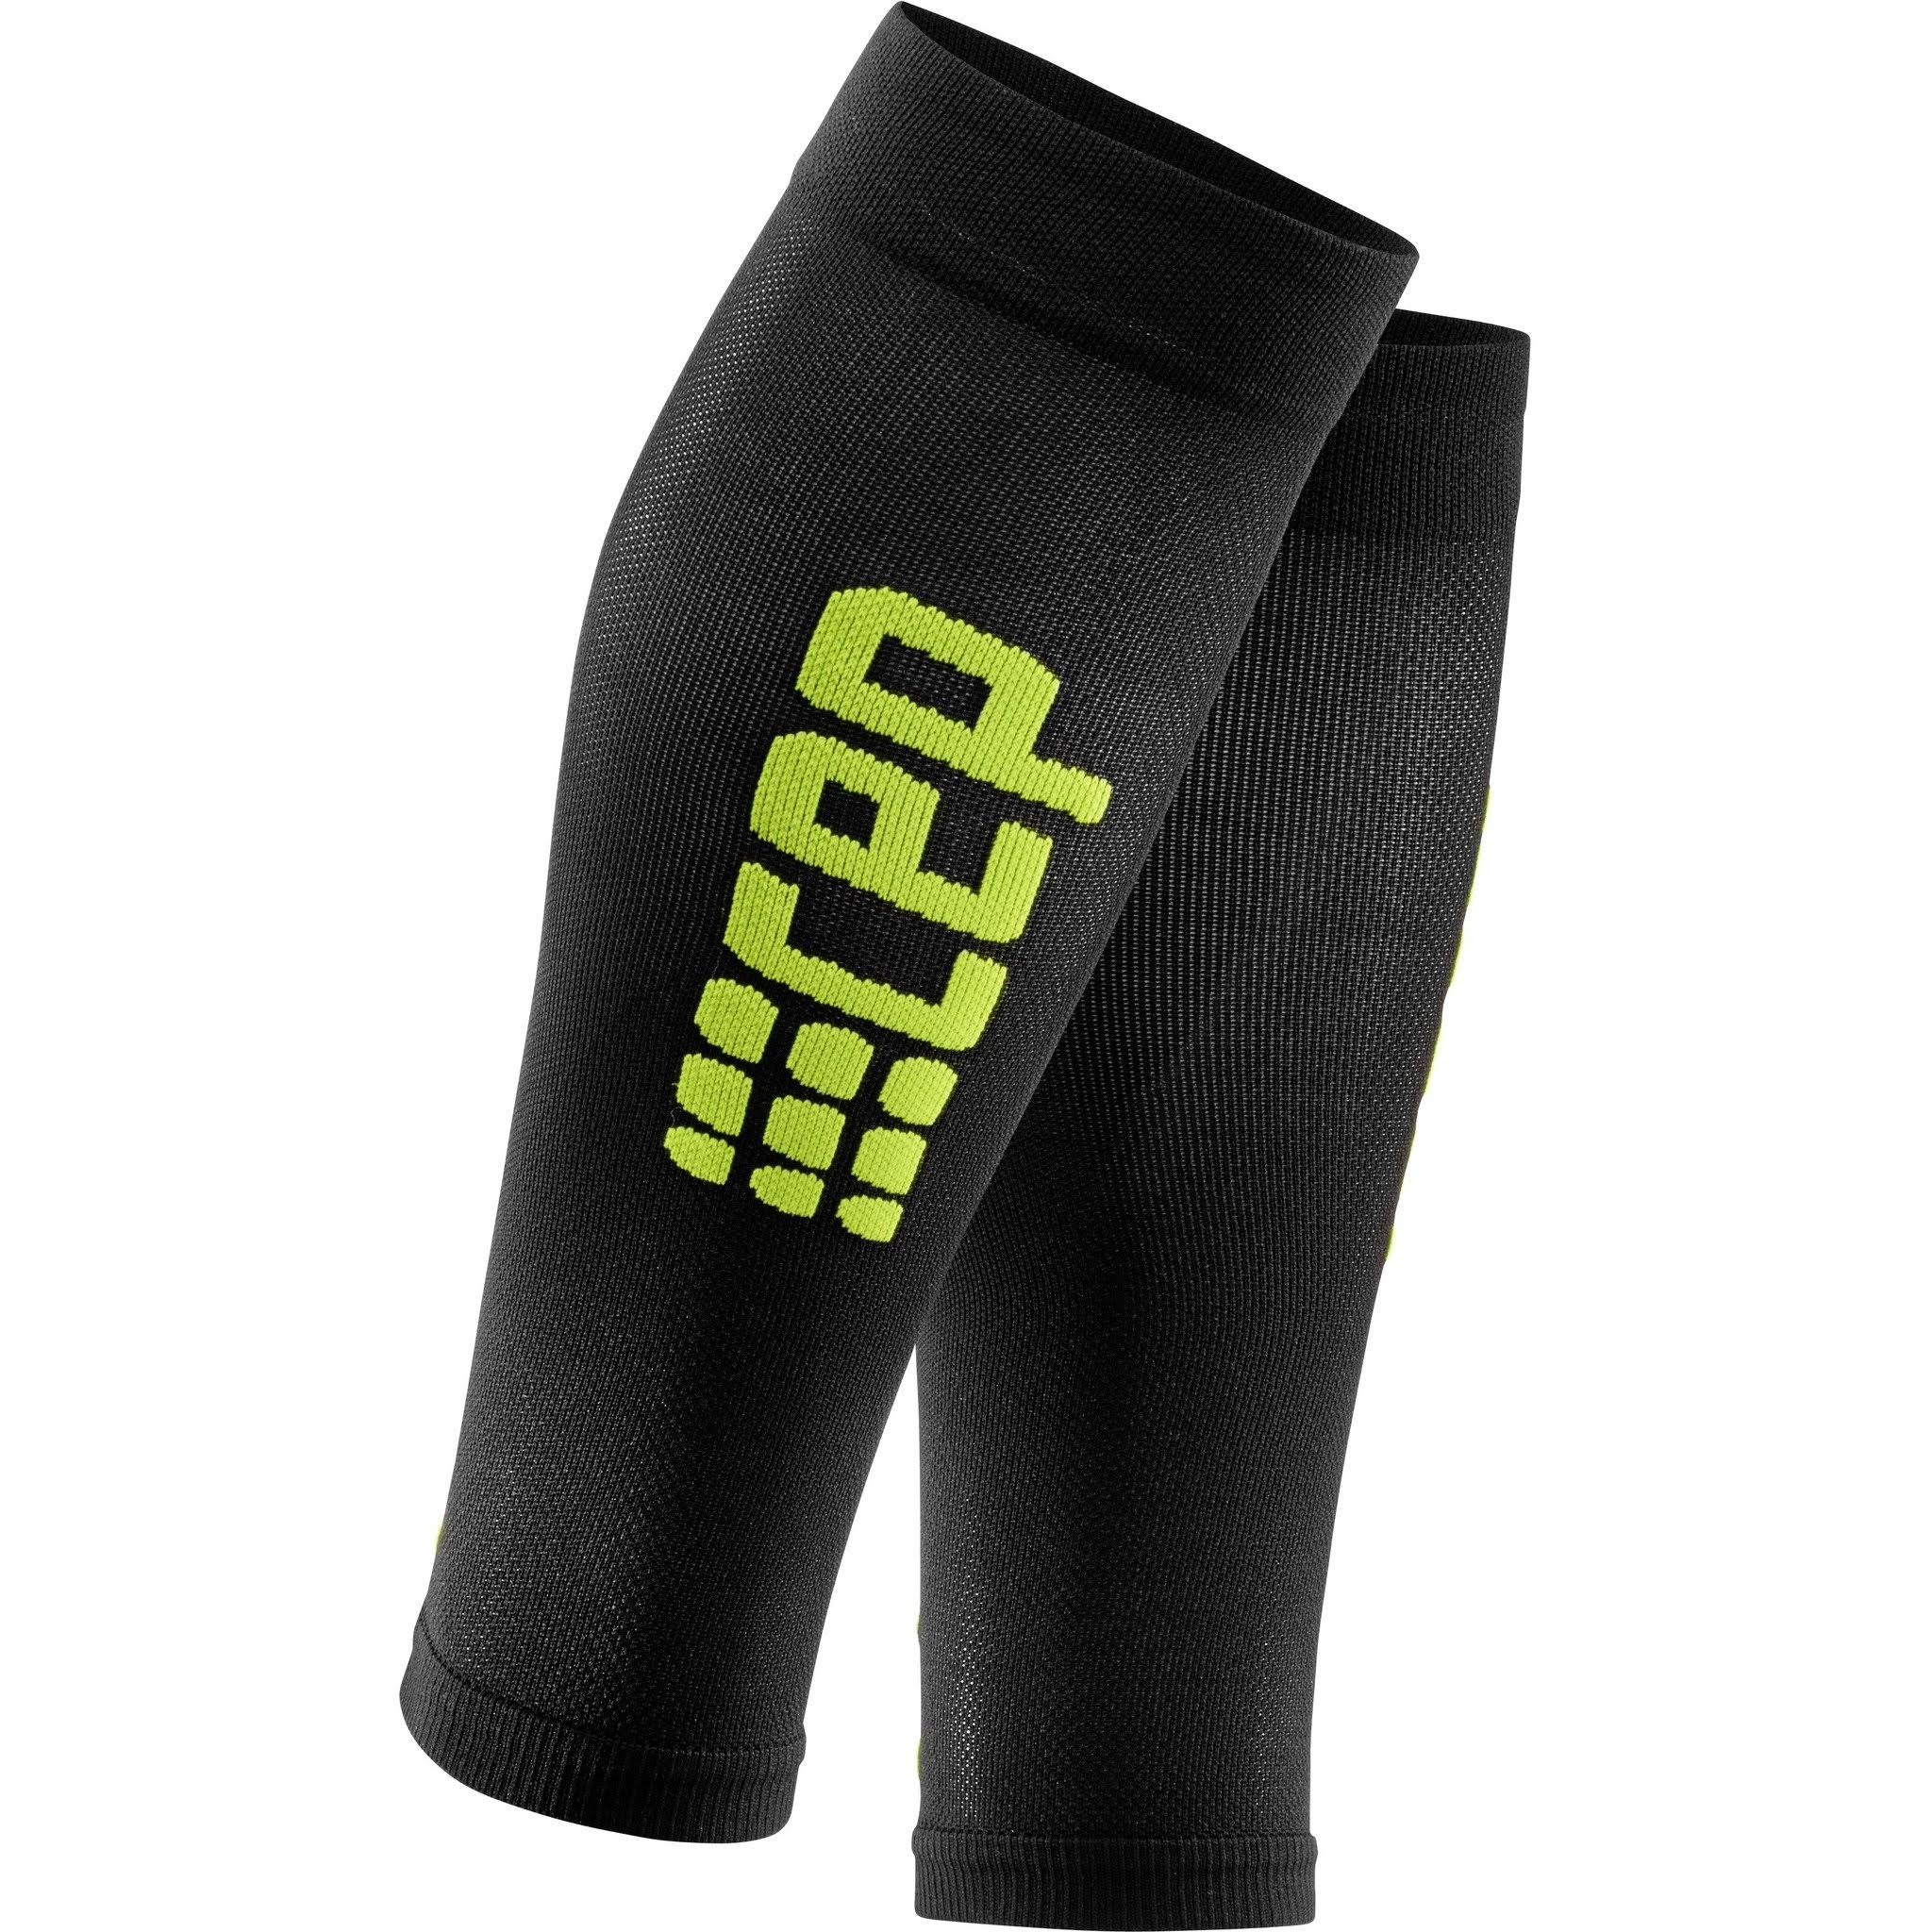 CEP Women's Progressive Ultralight Calf Sleeves With Compression - Large